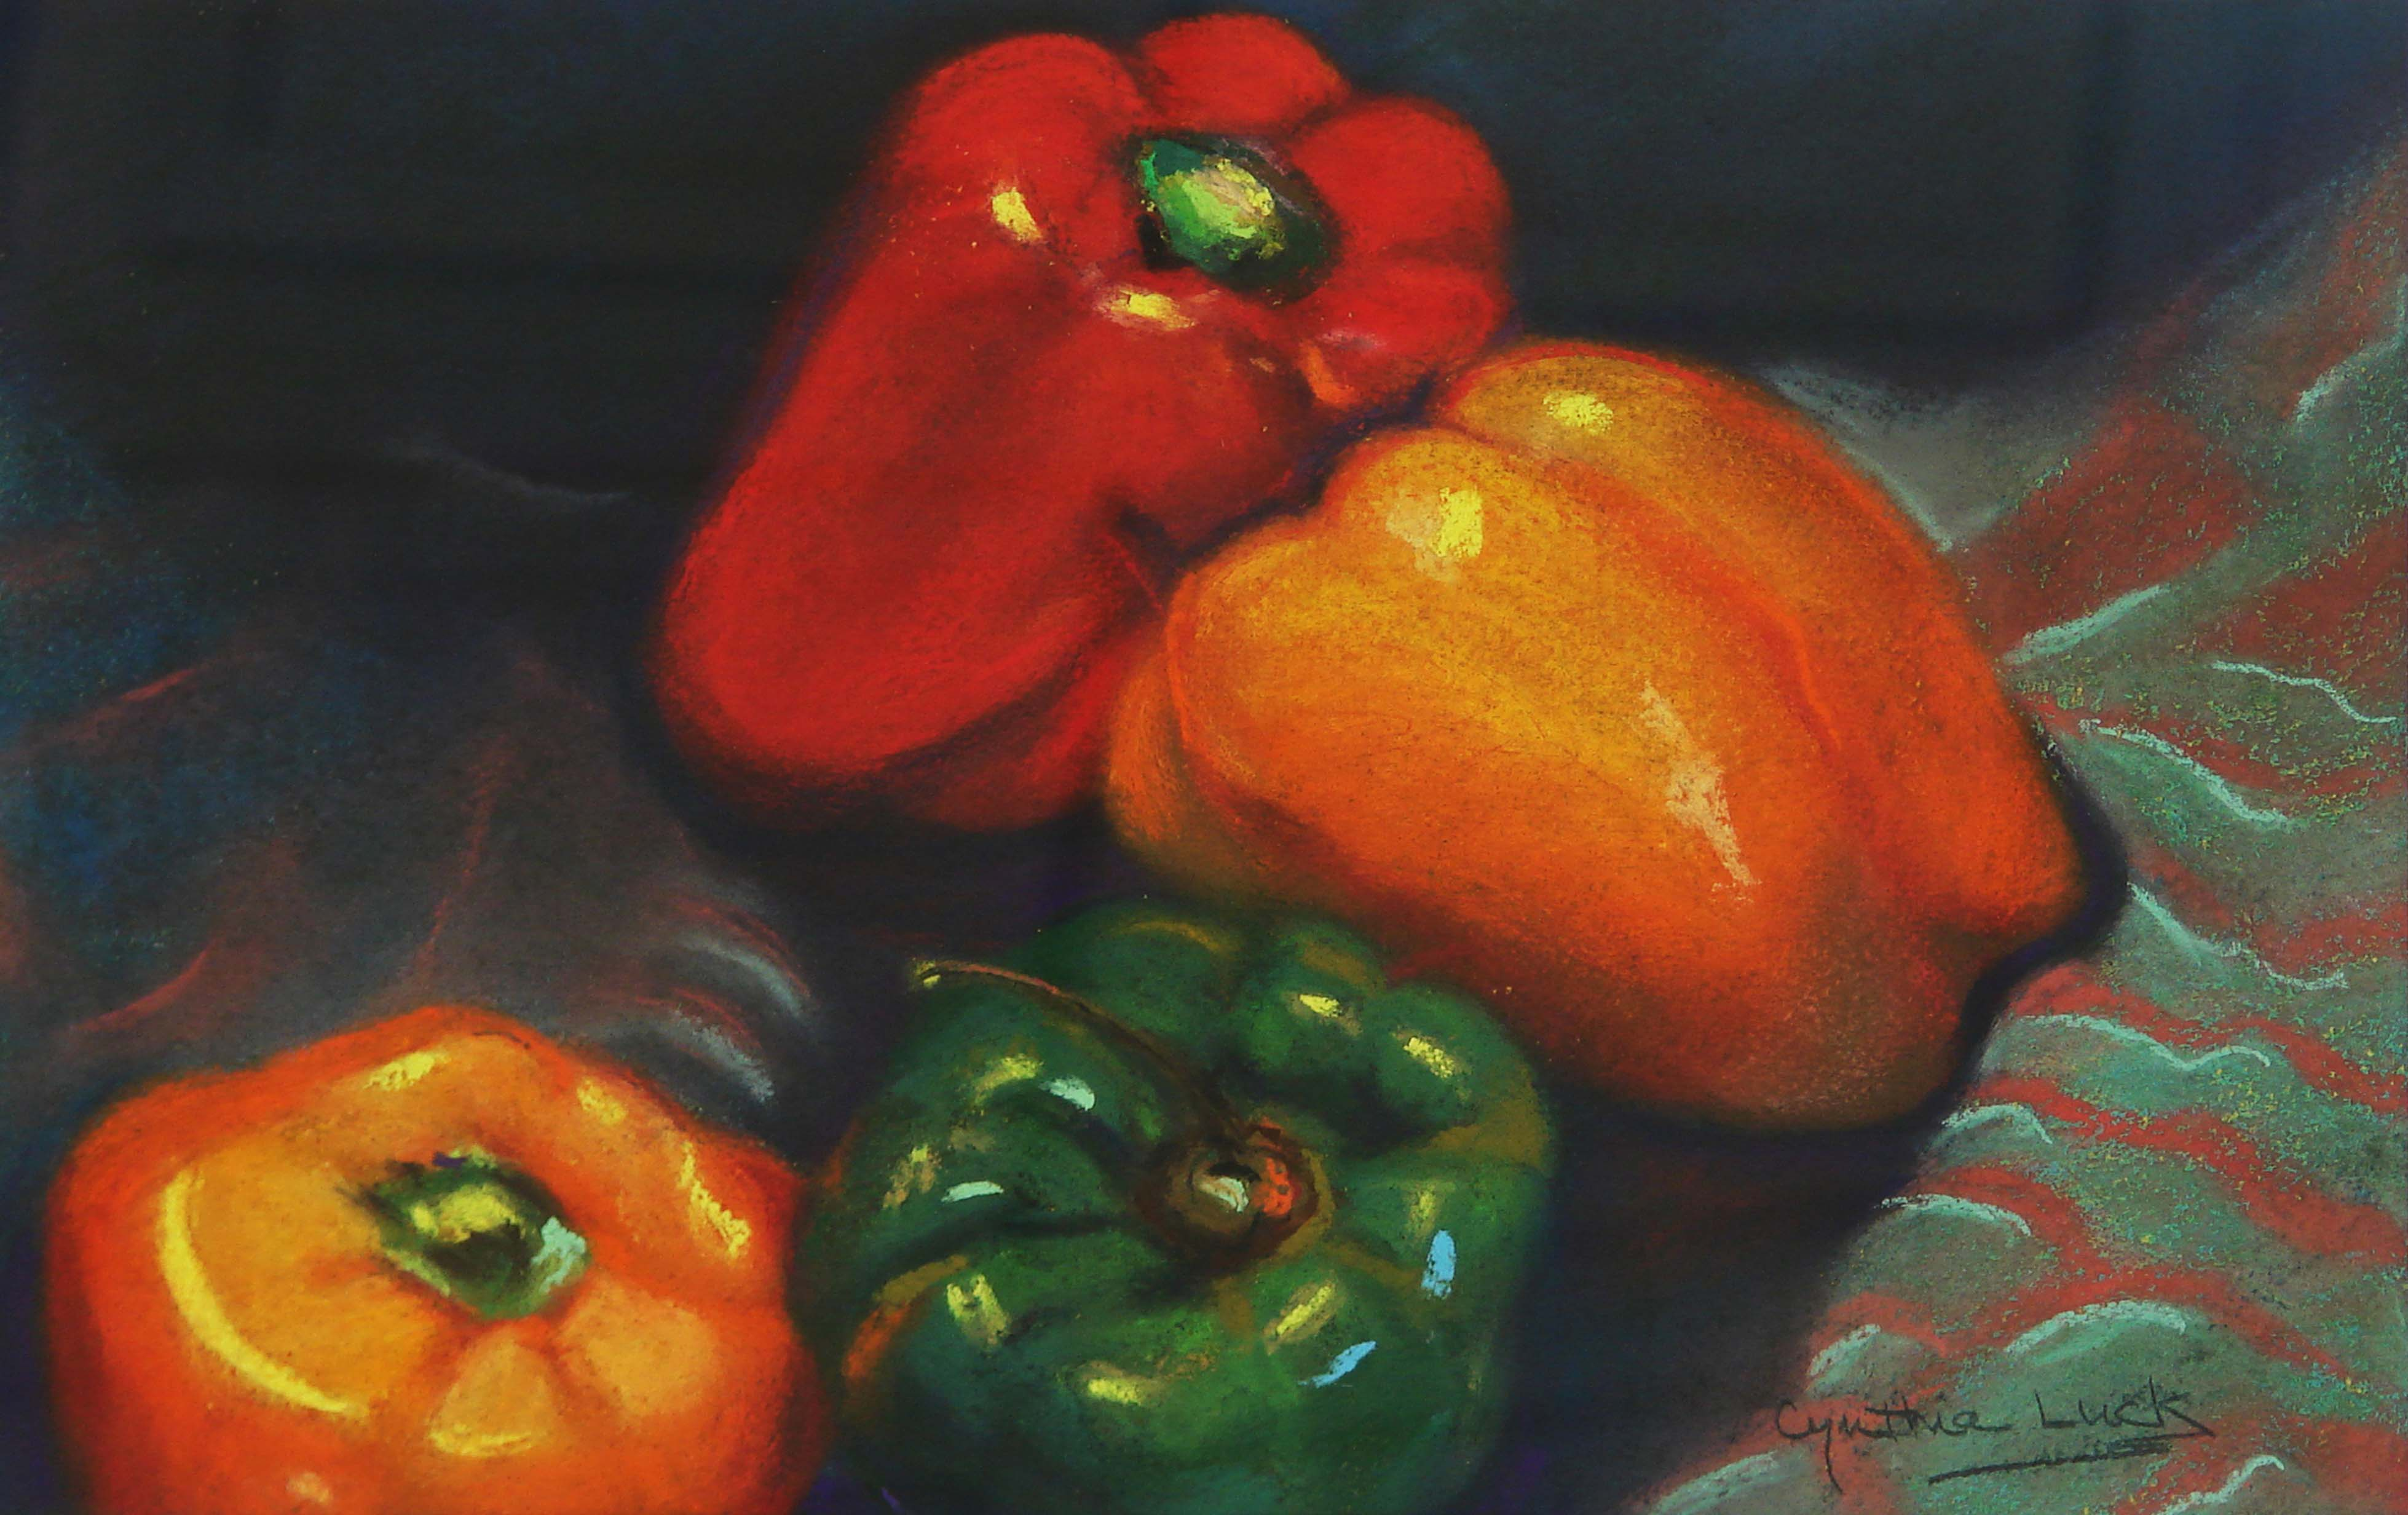 Cynthia Luck_Fresh Bell Peppers_225